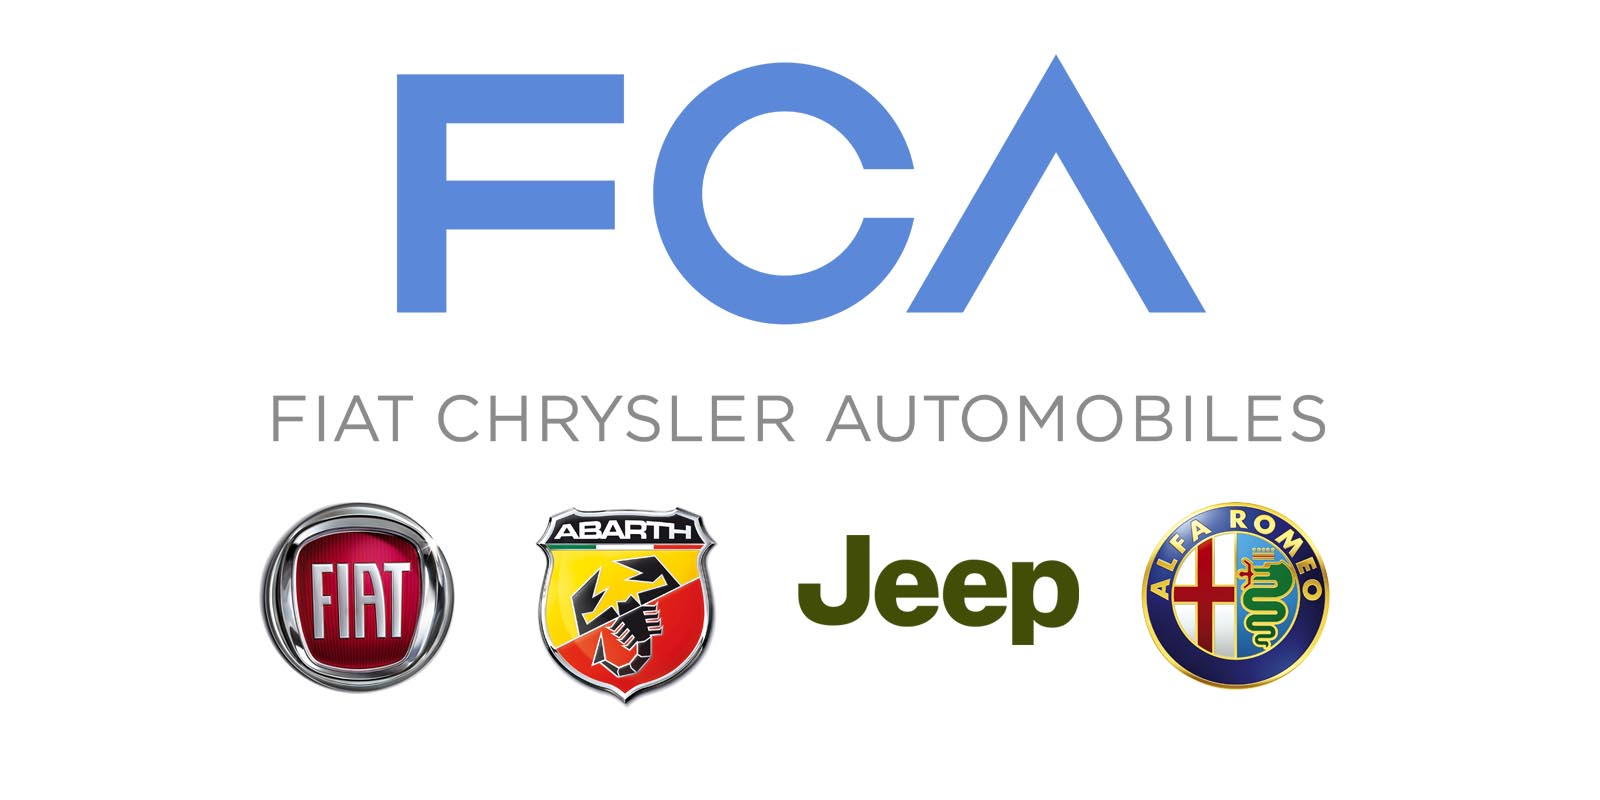 GSD® sign a digital partnership with Fiat Chrysler Automobiles until 2022.